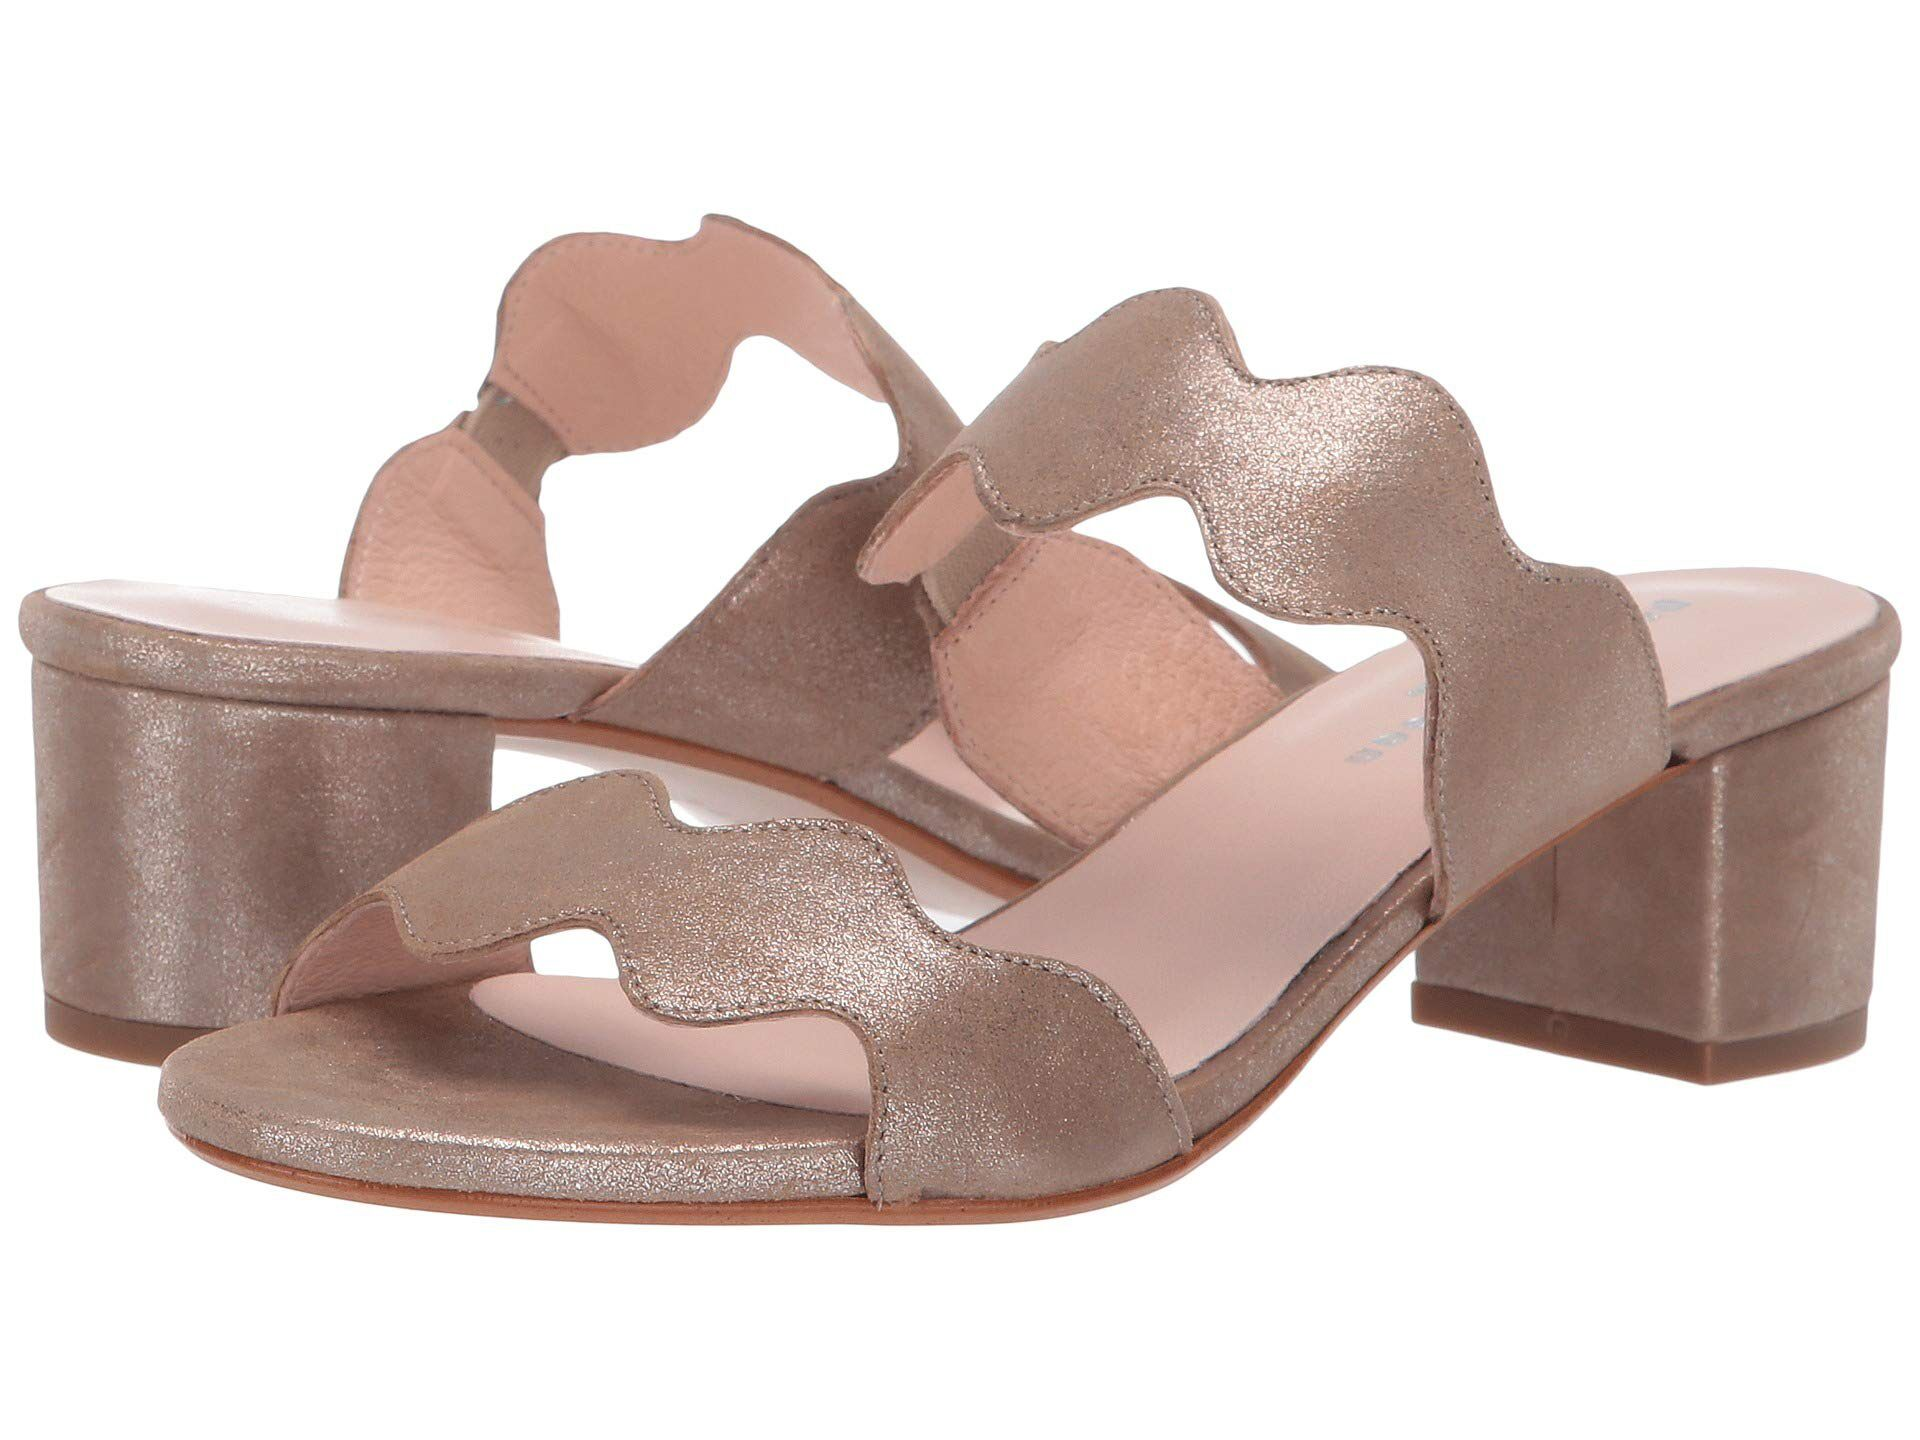 65c32a7ba 28 Beach Wedding Shoes That Are Stylish and Sand-Ready